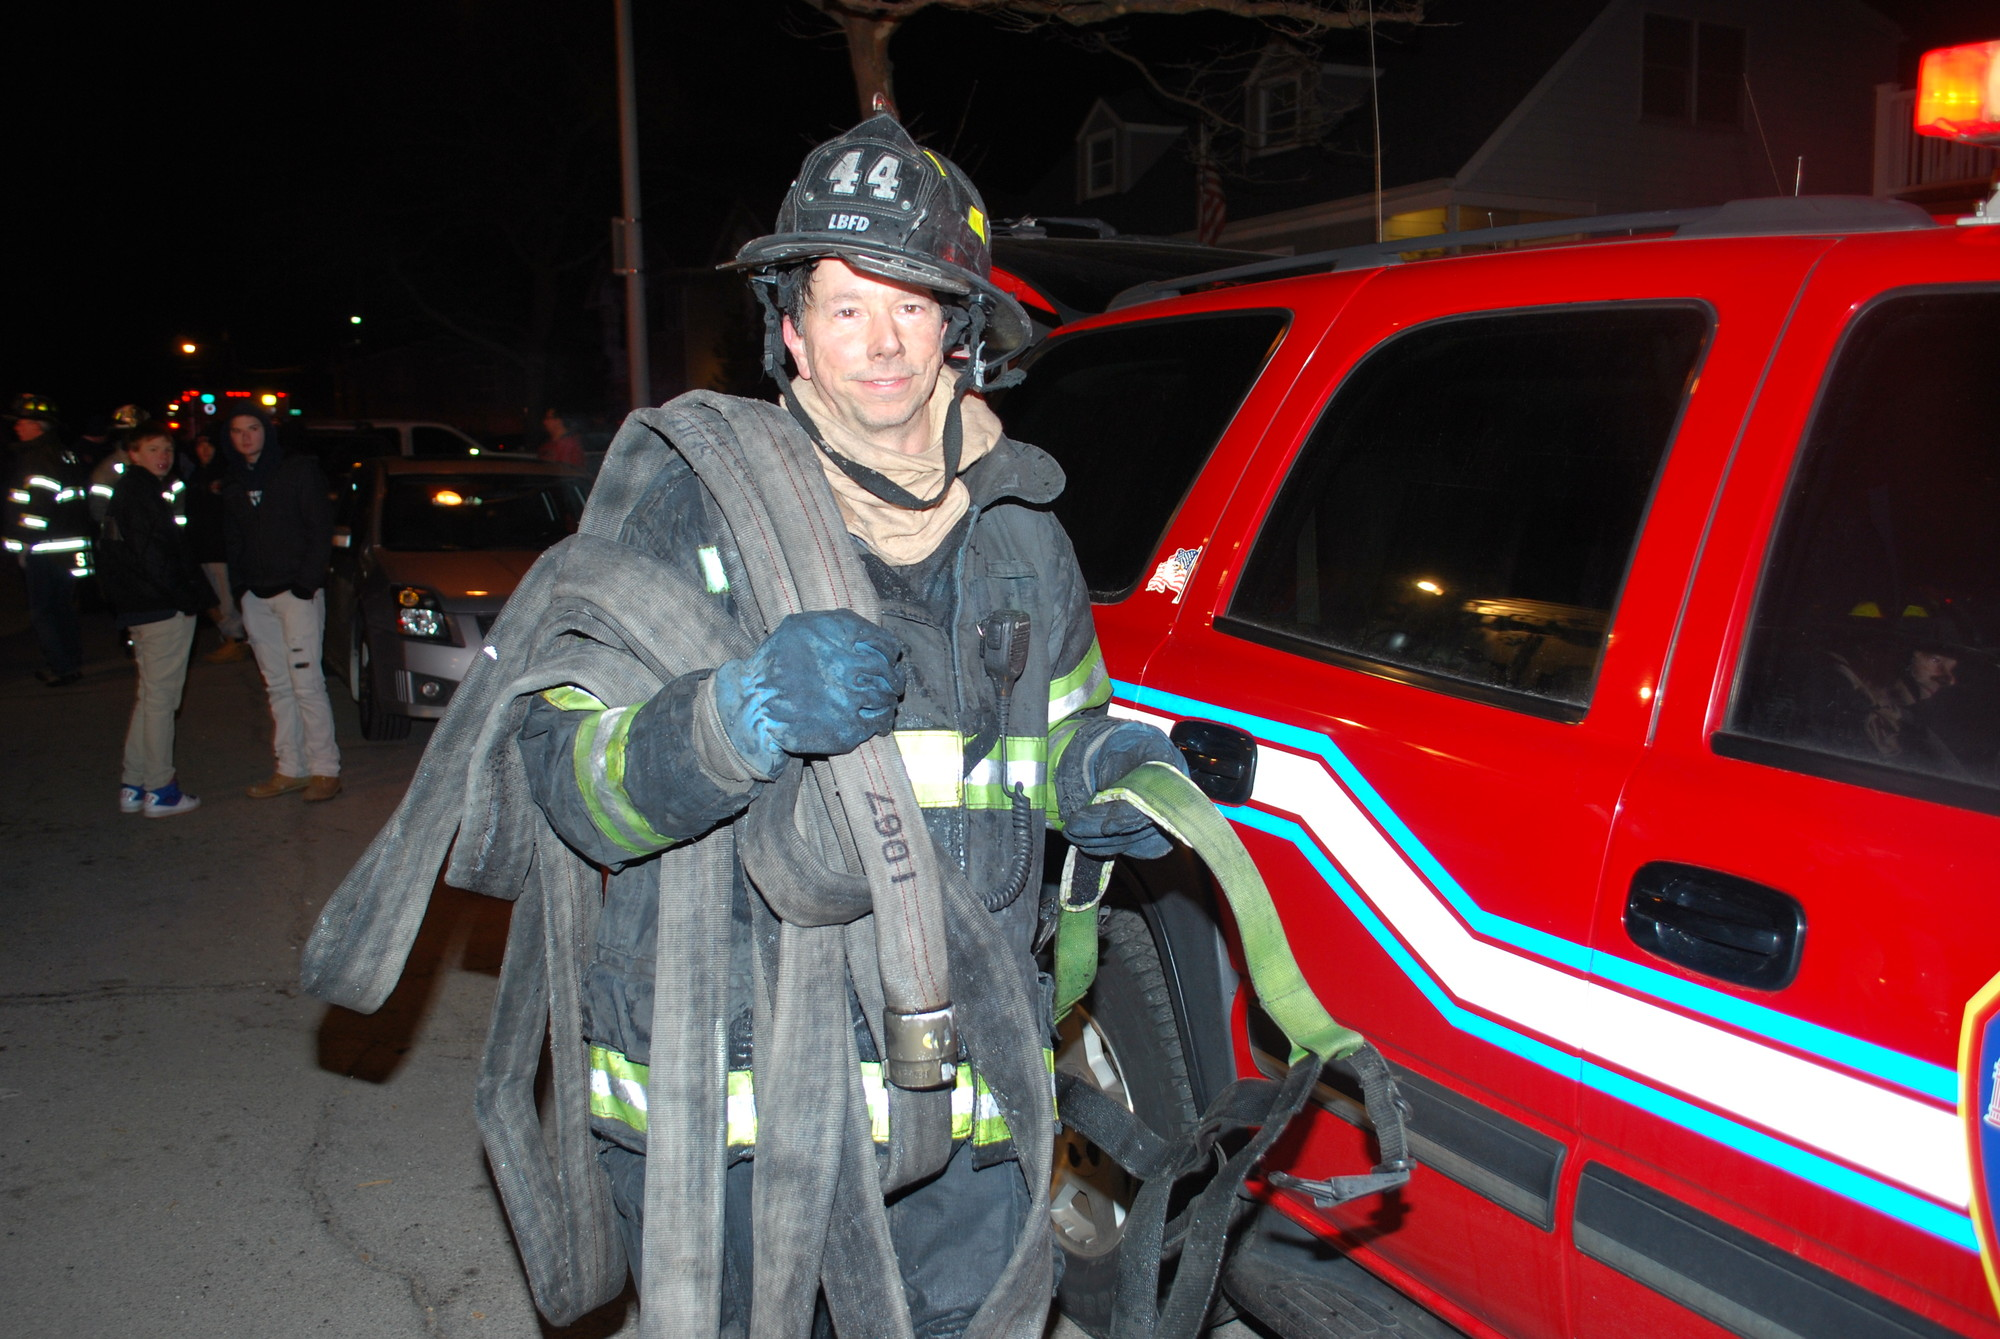 Lt. Stan Rozyckt of LBFD Engine 44 at the scene of the fire.